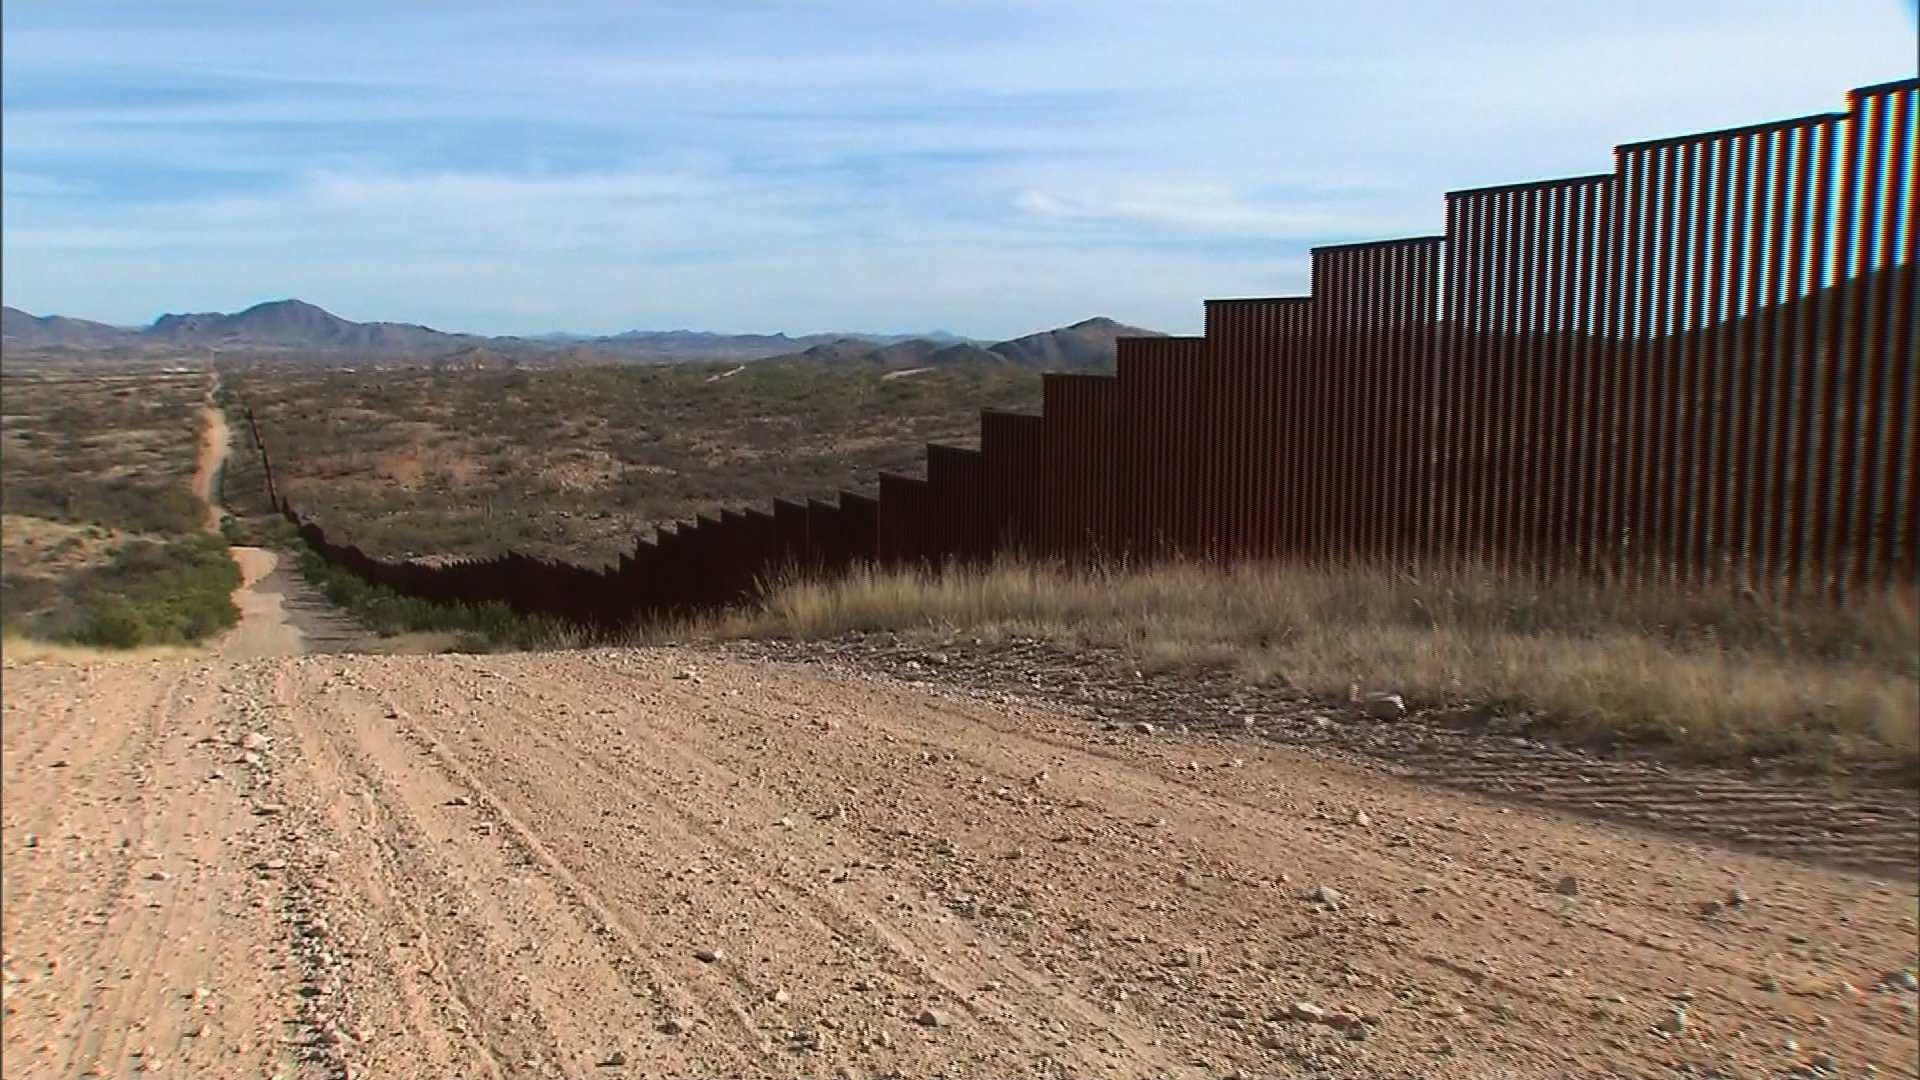 The fence along the southern border of the United States where it meets Mexico.